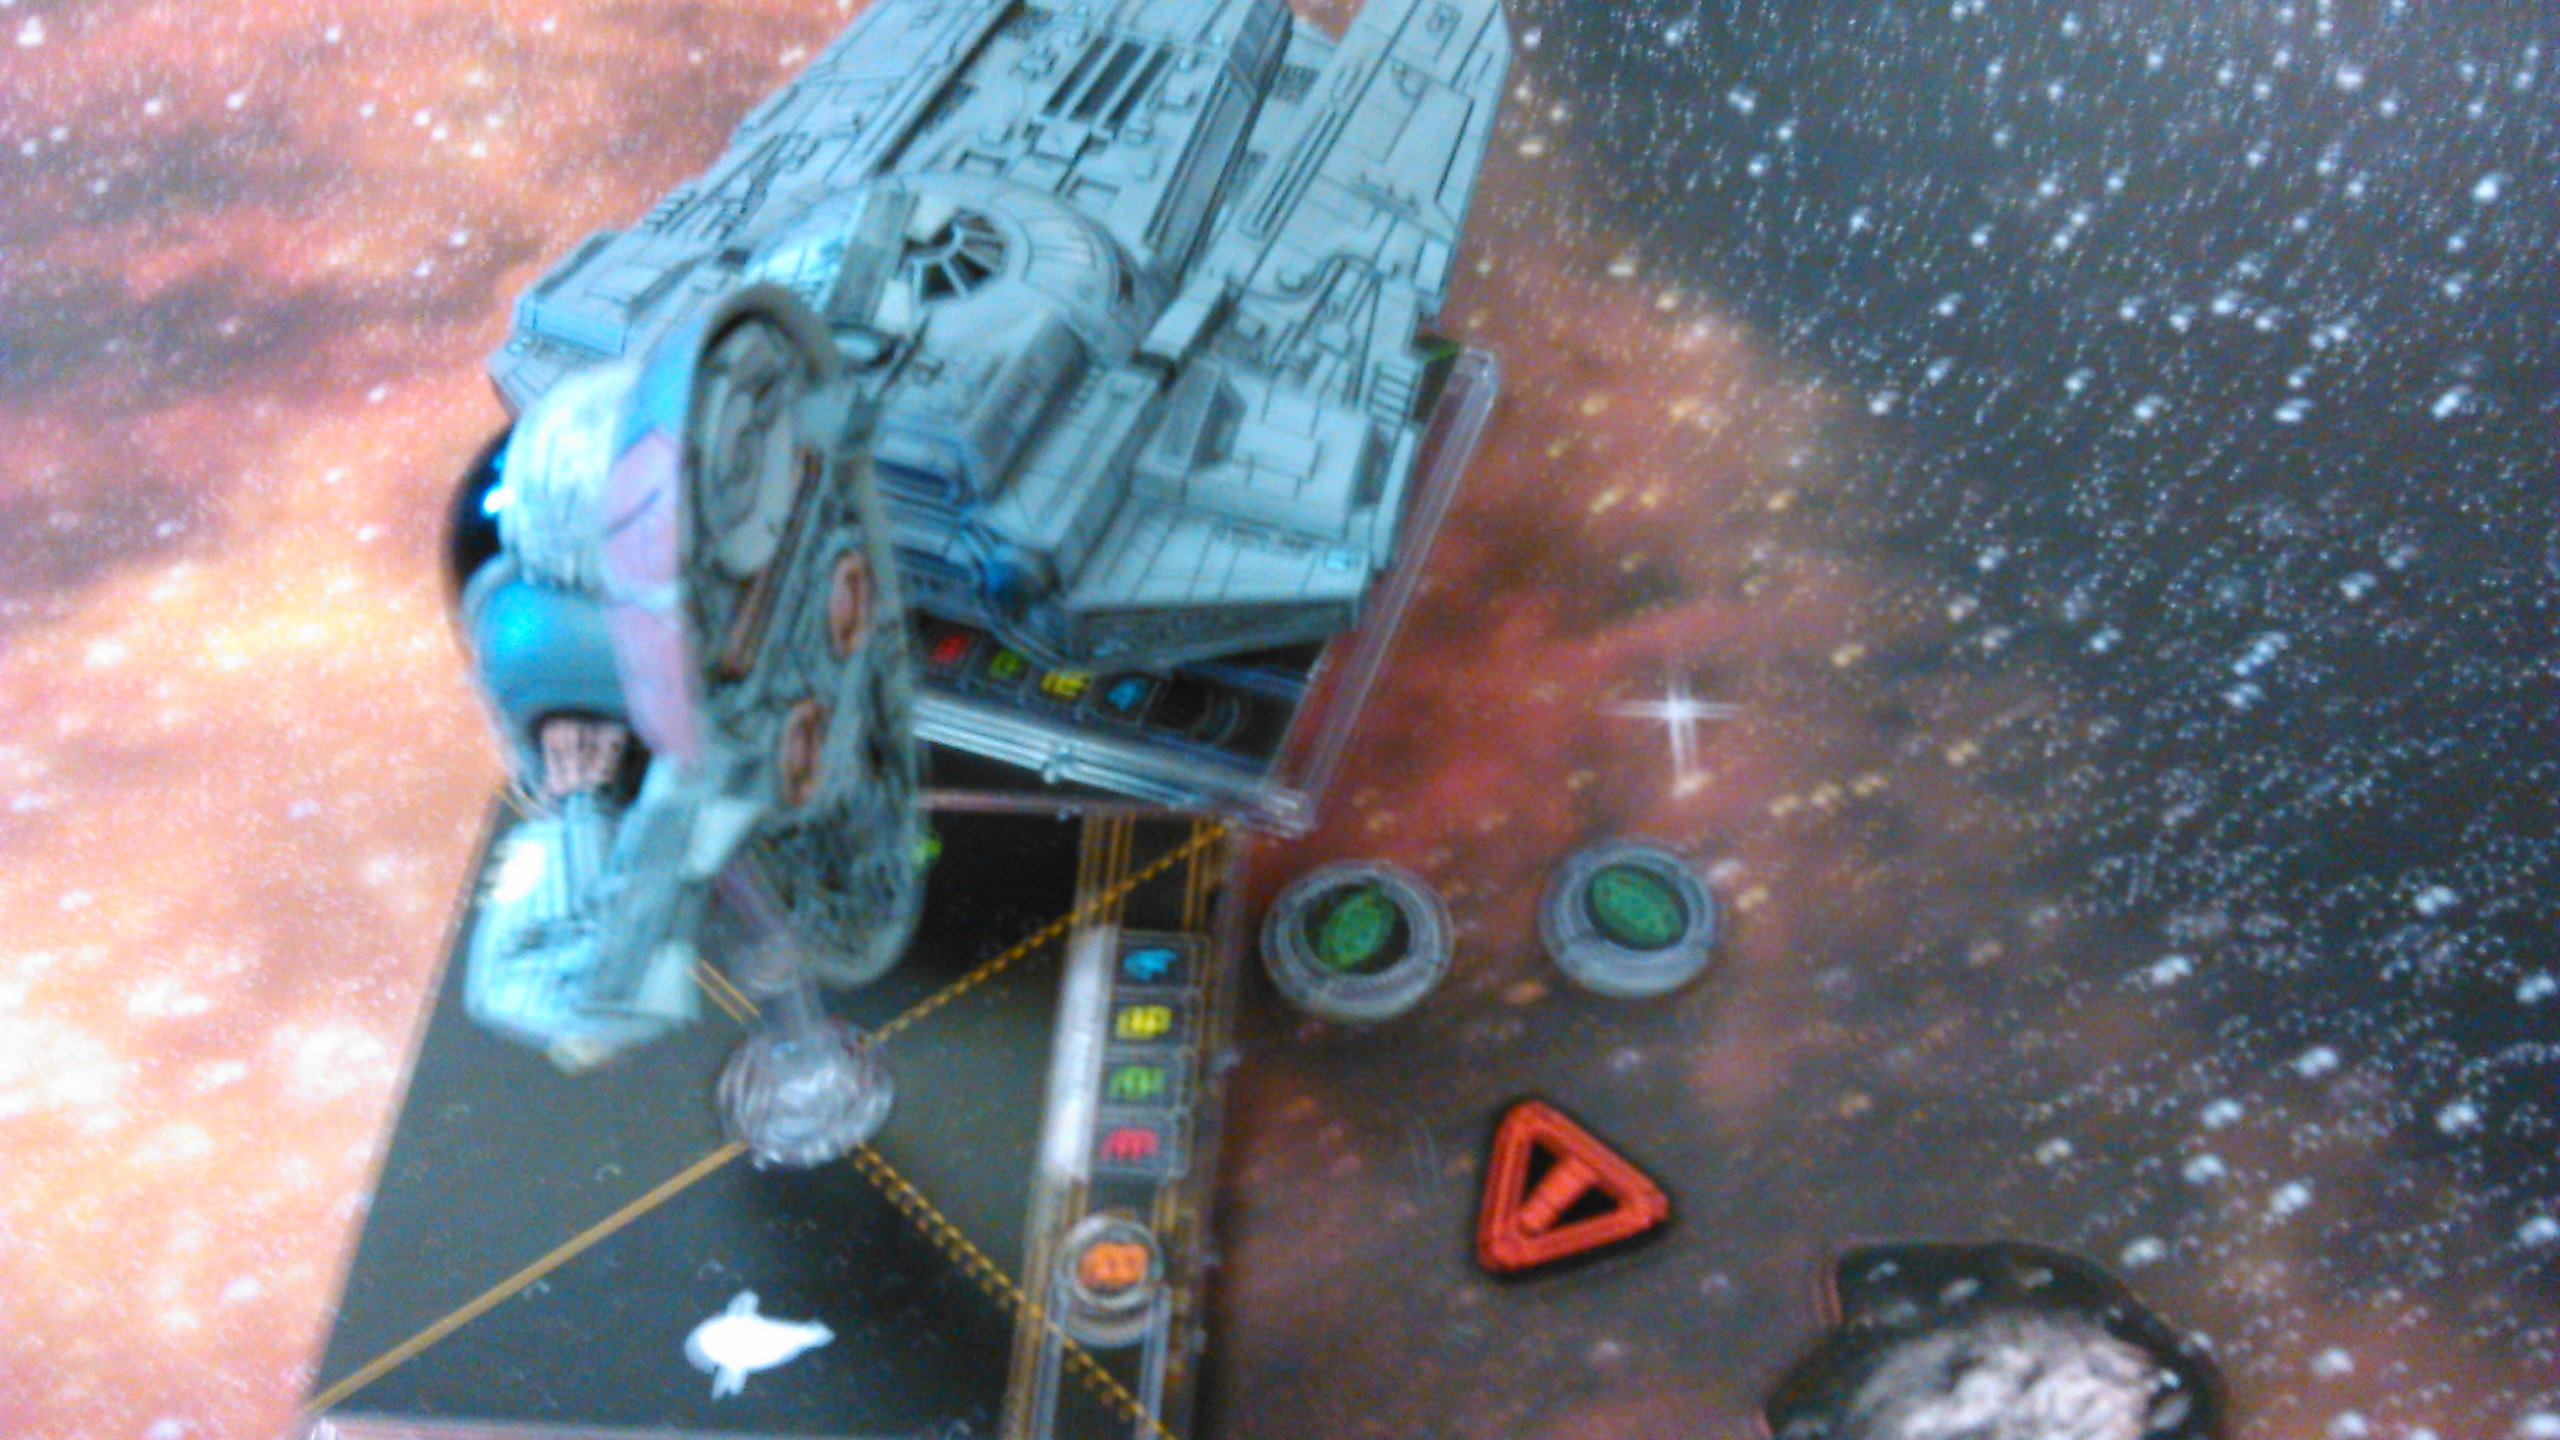 Boba not only avoids a bump, buts gets a range 1 shot on a Decimator.